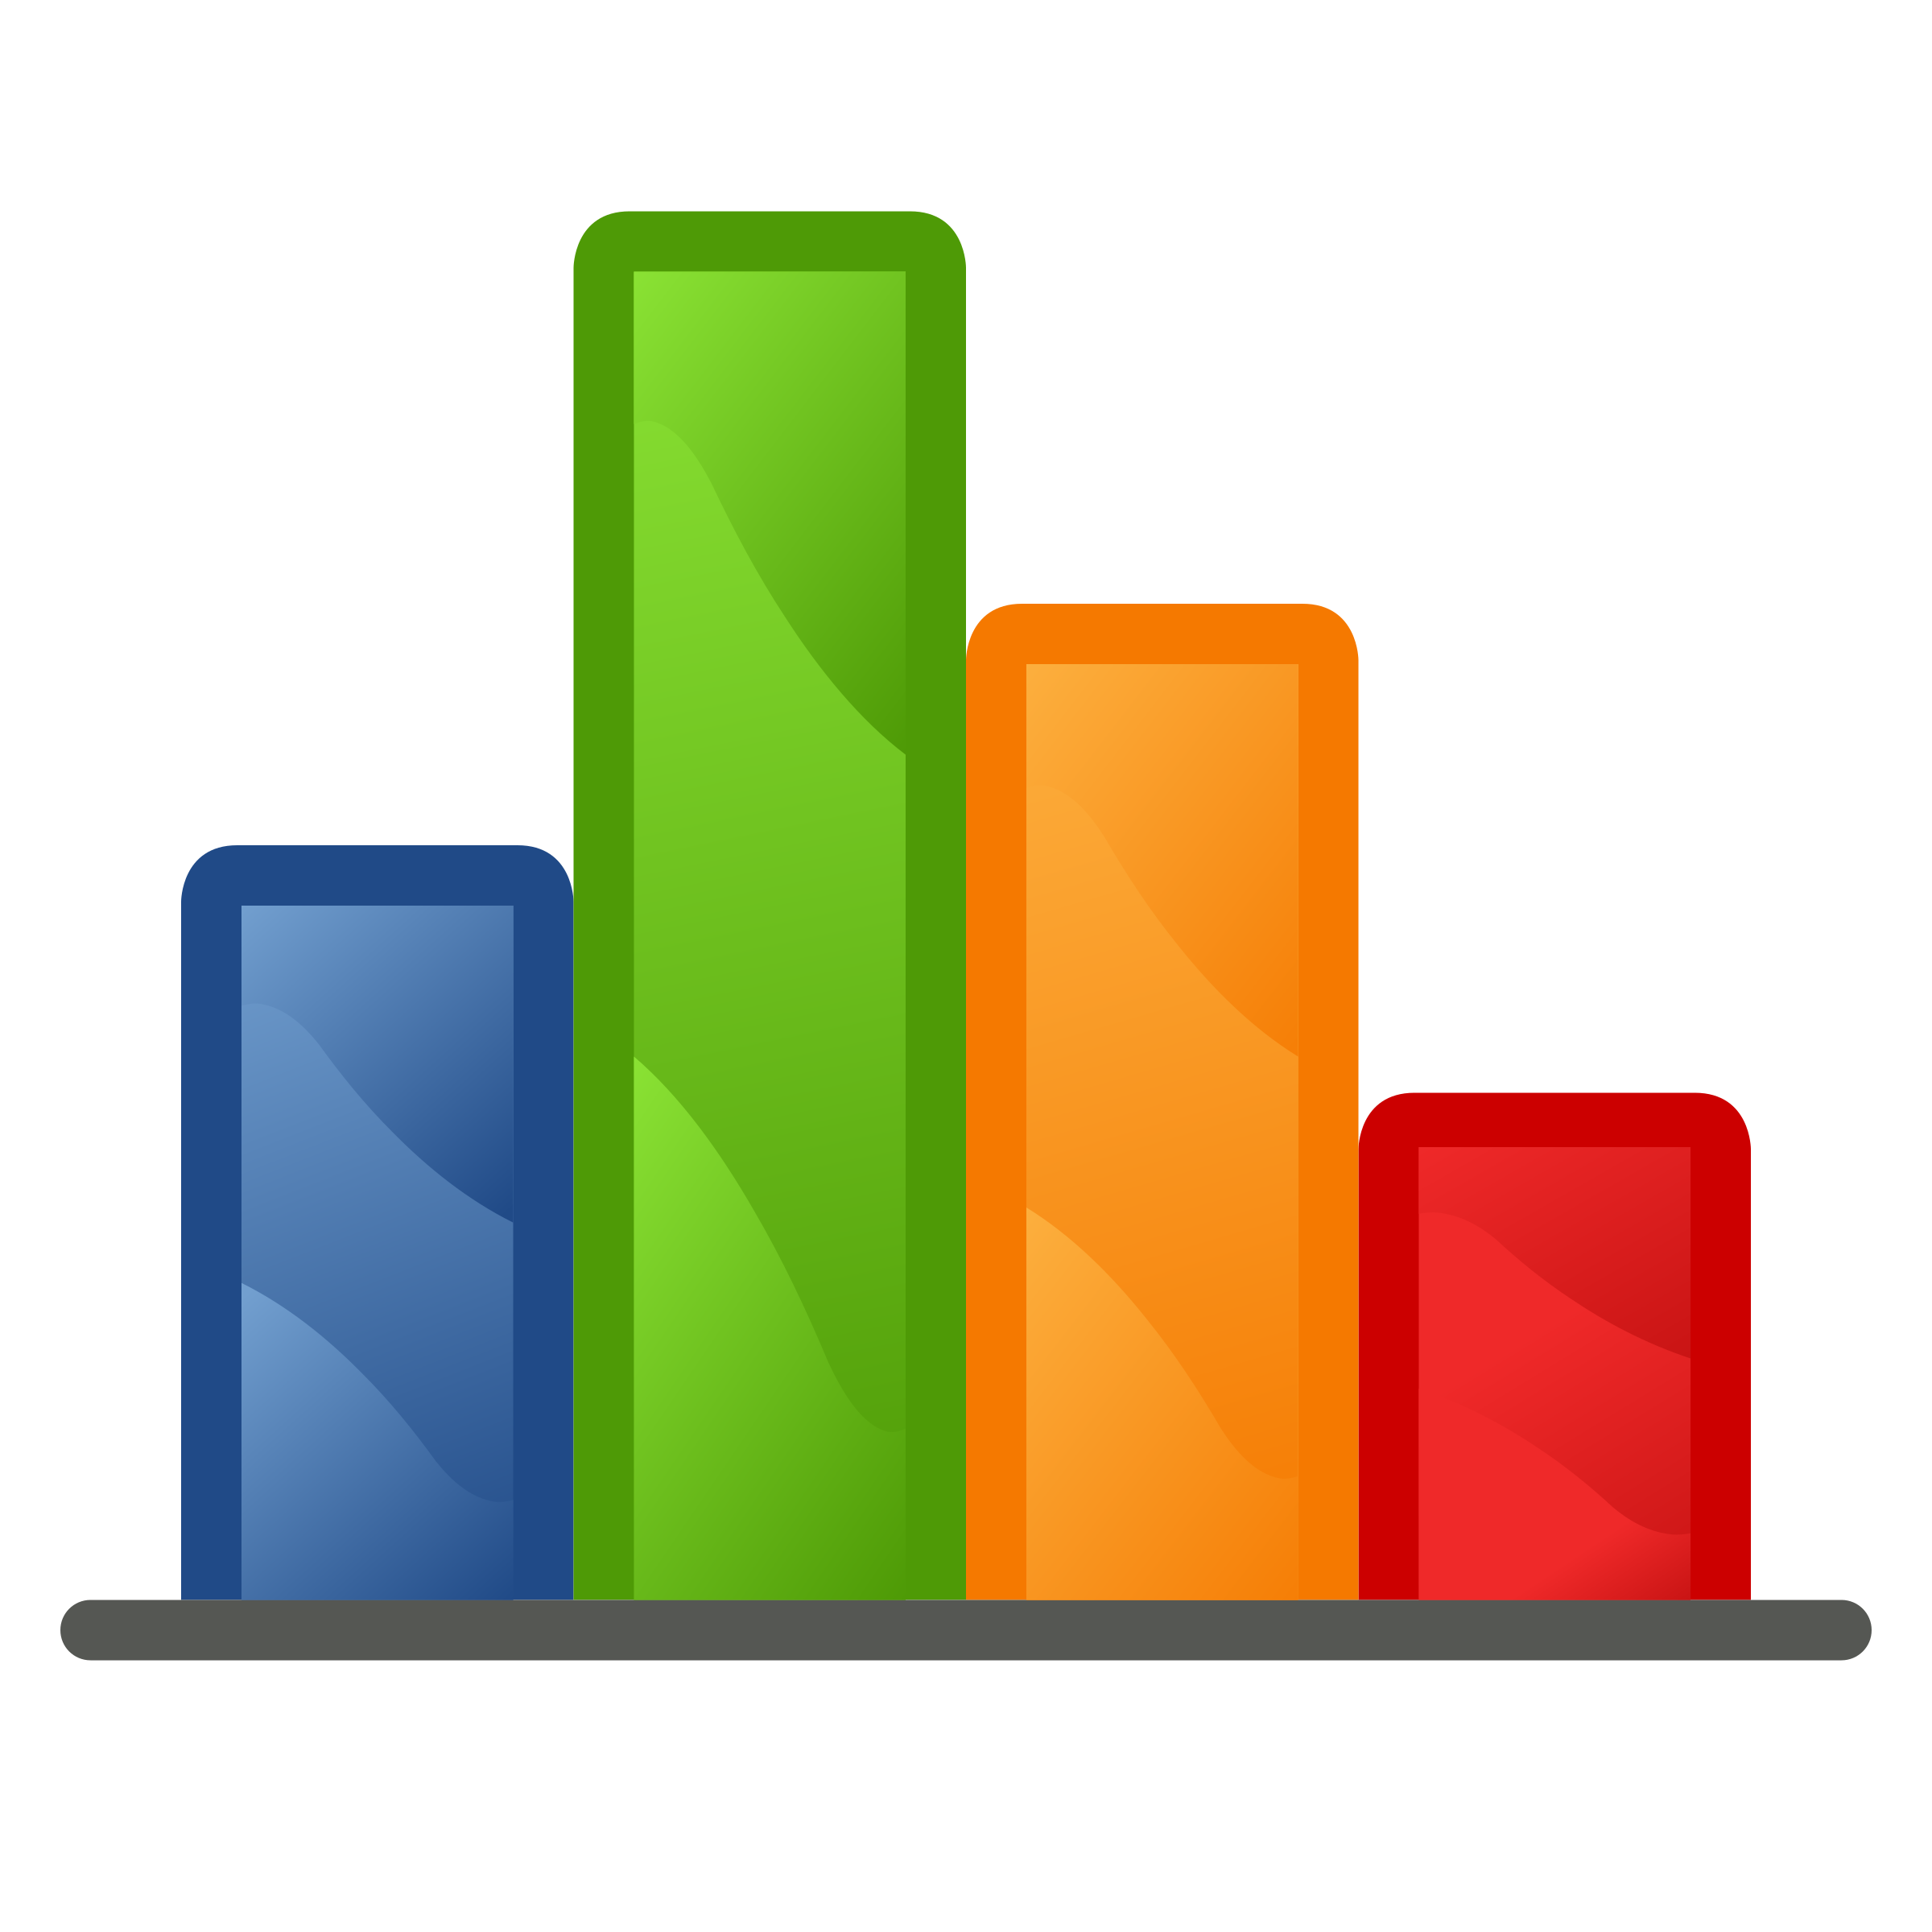 Graph clipart statistics math Graphics IMAGE (PNG) Clipart rounded